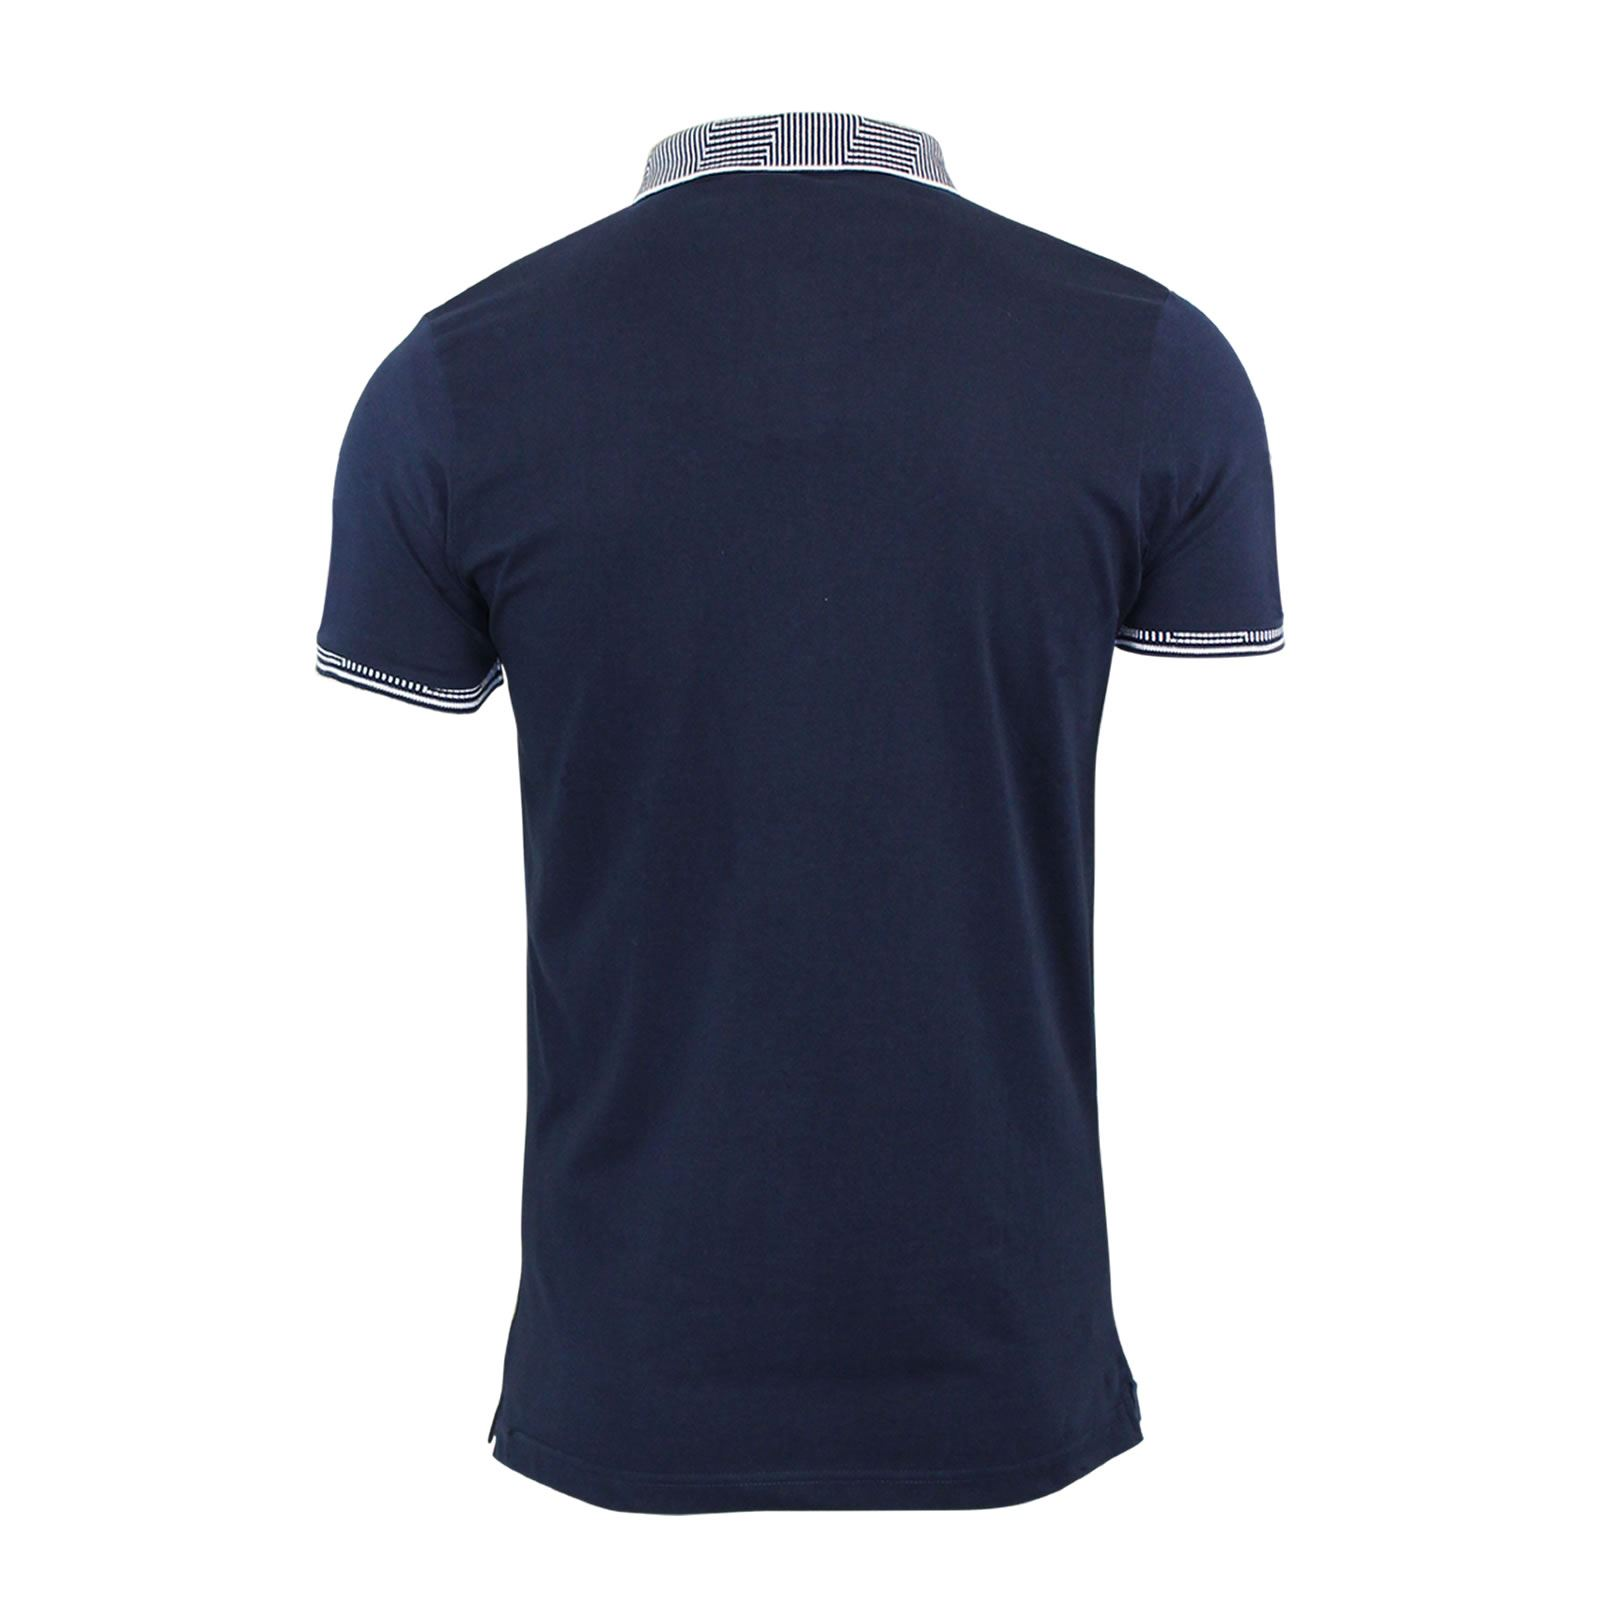 Brave-Soul-Glover-Mens-Polo-T-Shirt-Cotton-Collared-Short-Sleeve-Casual-Top thumbnail 45